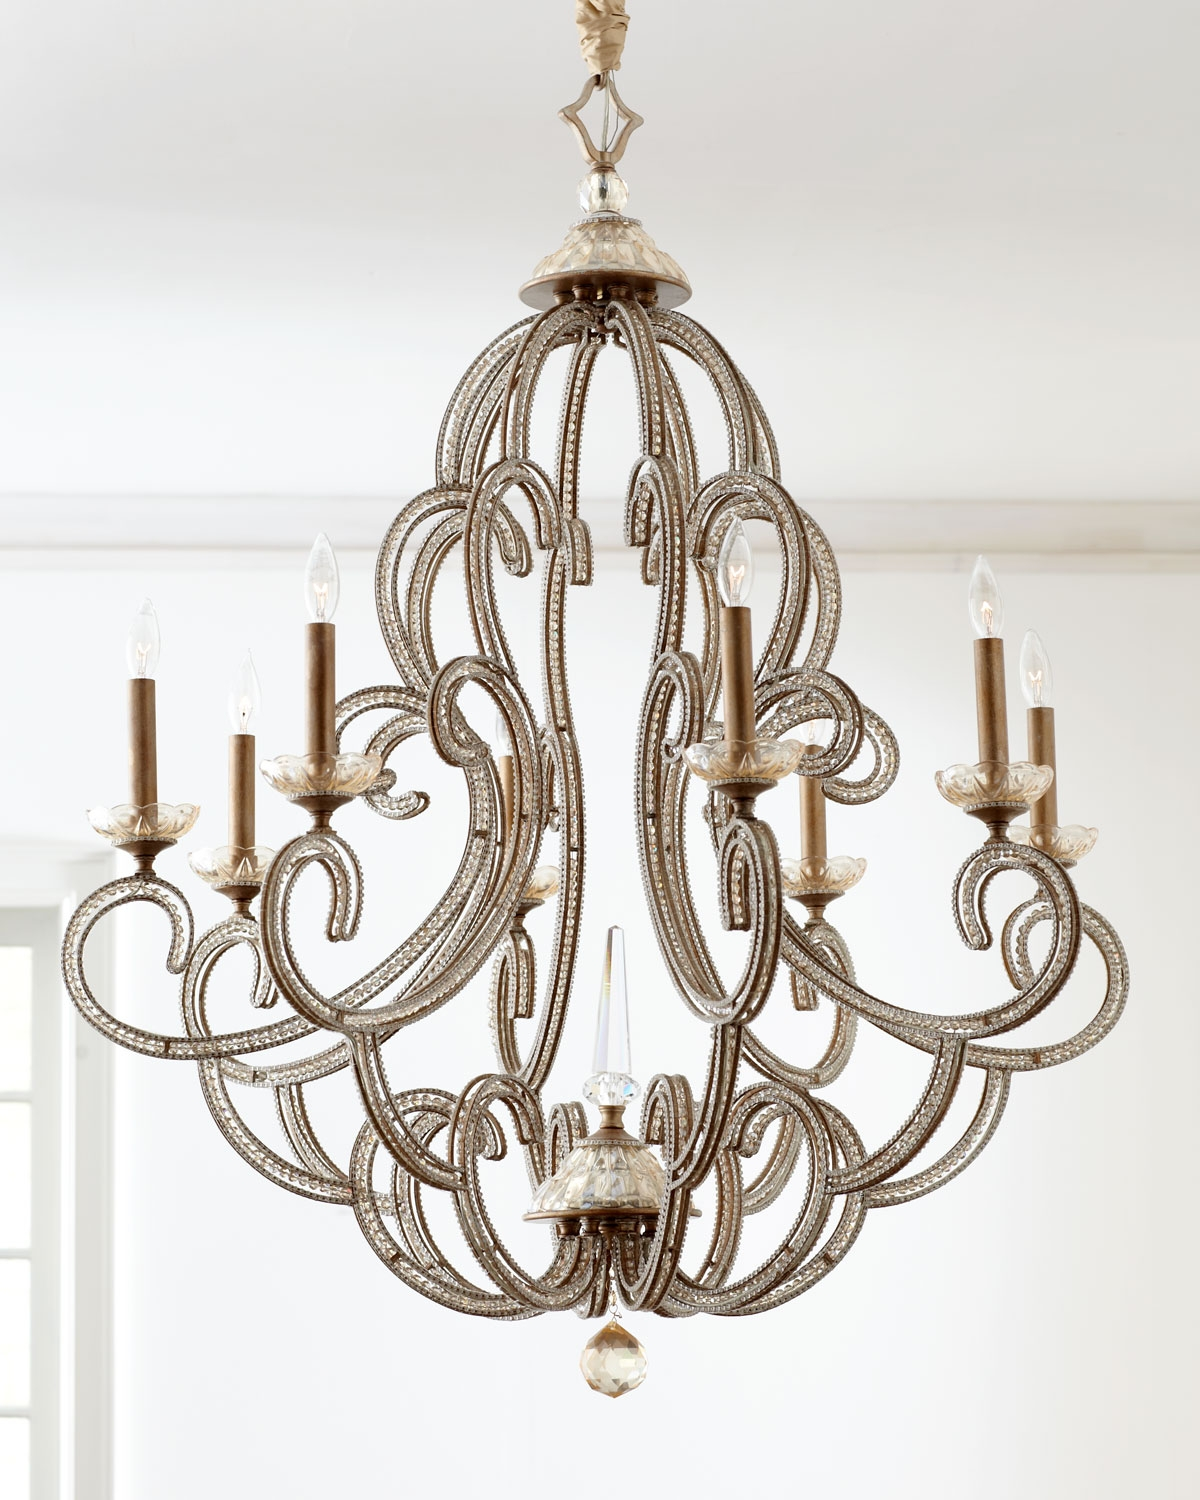 Beaded Elegance 8 Light Chandelier Chandeliers With Regard To Mirrored Chandelier (Image 3 of 15)